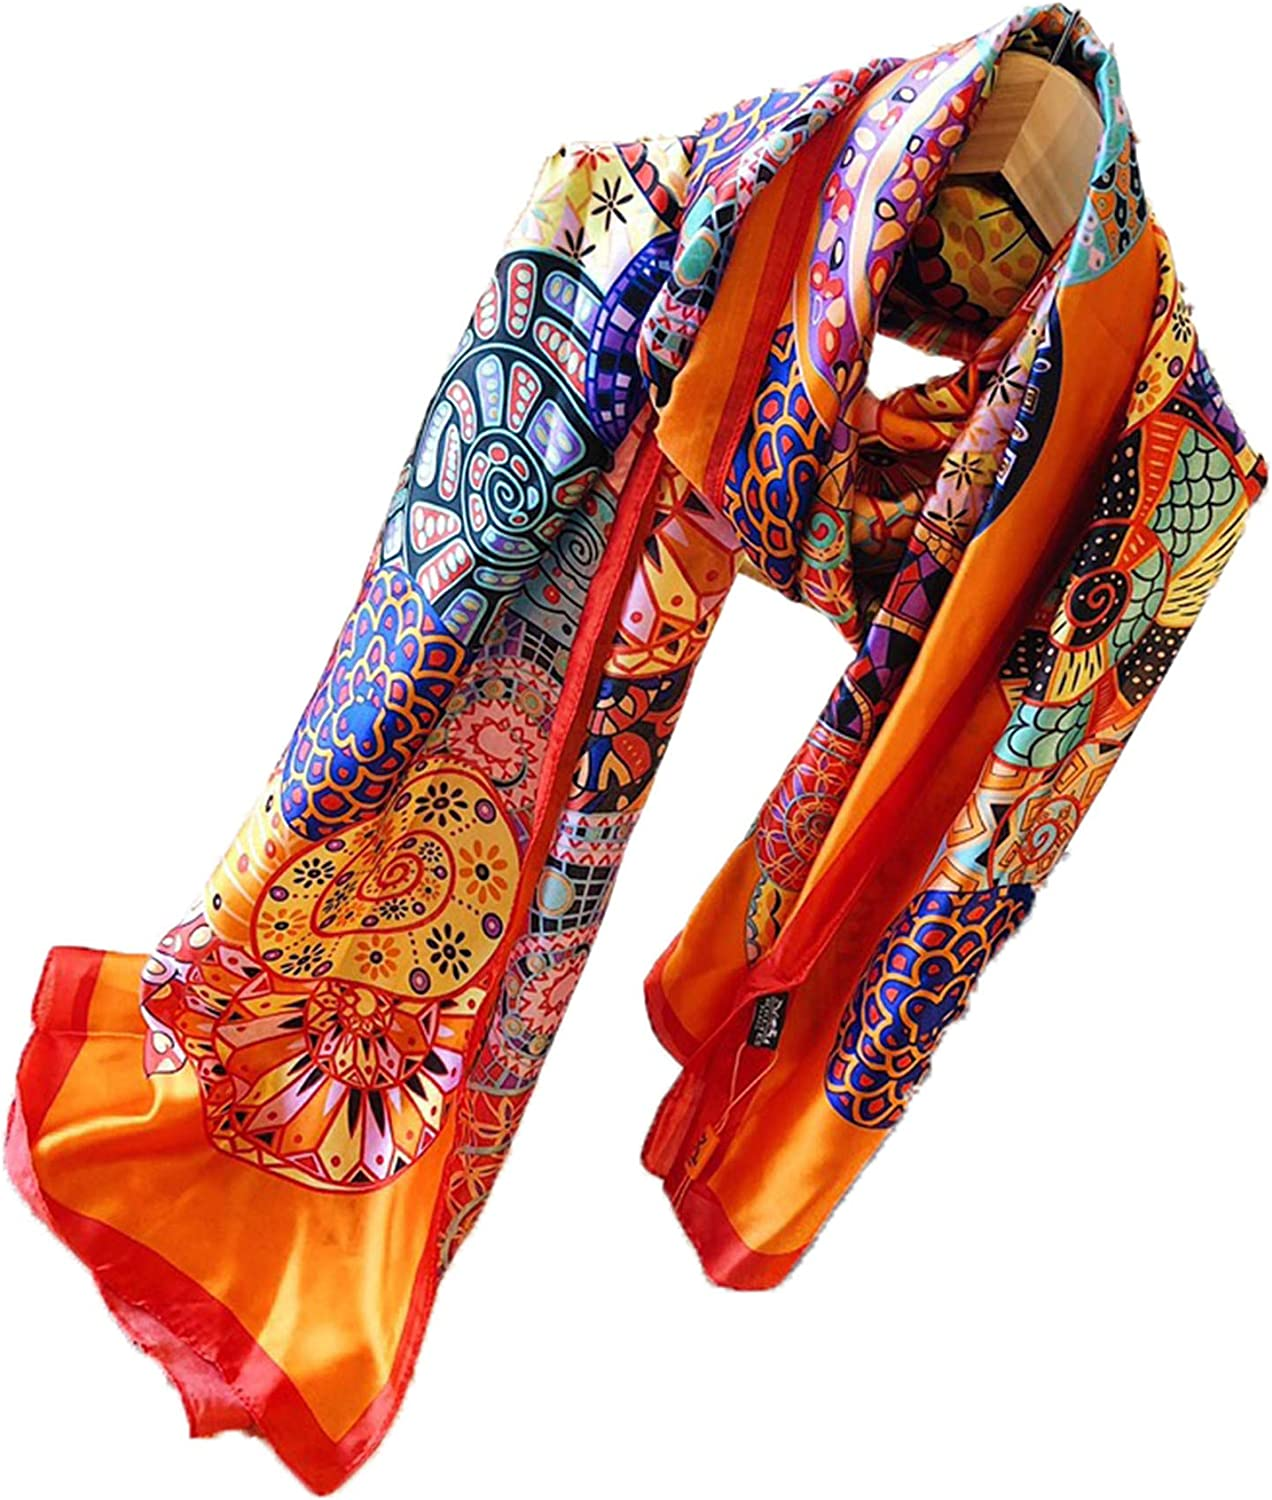 Fashion luxury silk scarves are suitable for women and men in four seasons. Luxury gifts are comfortable to wear anywhere (Q43)